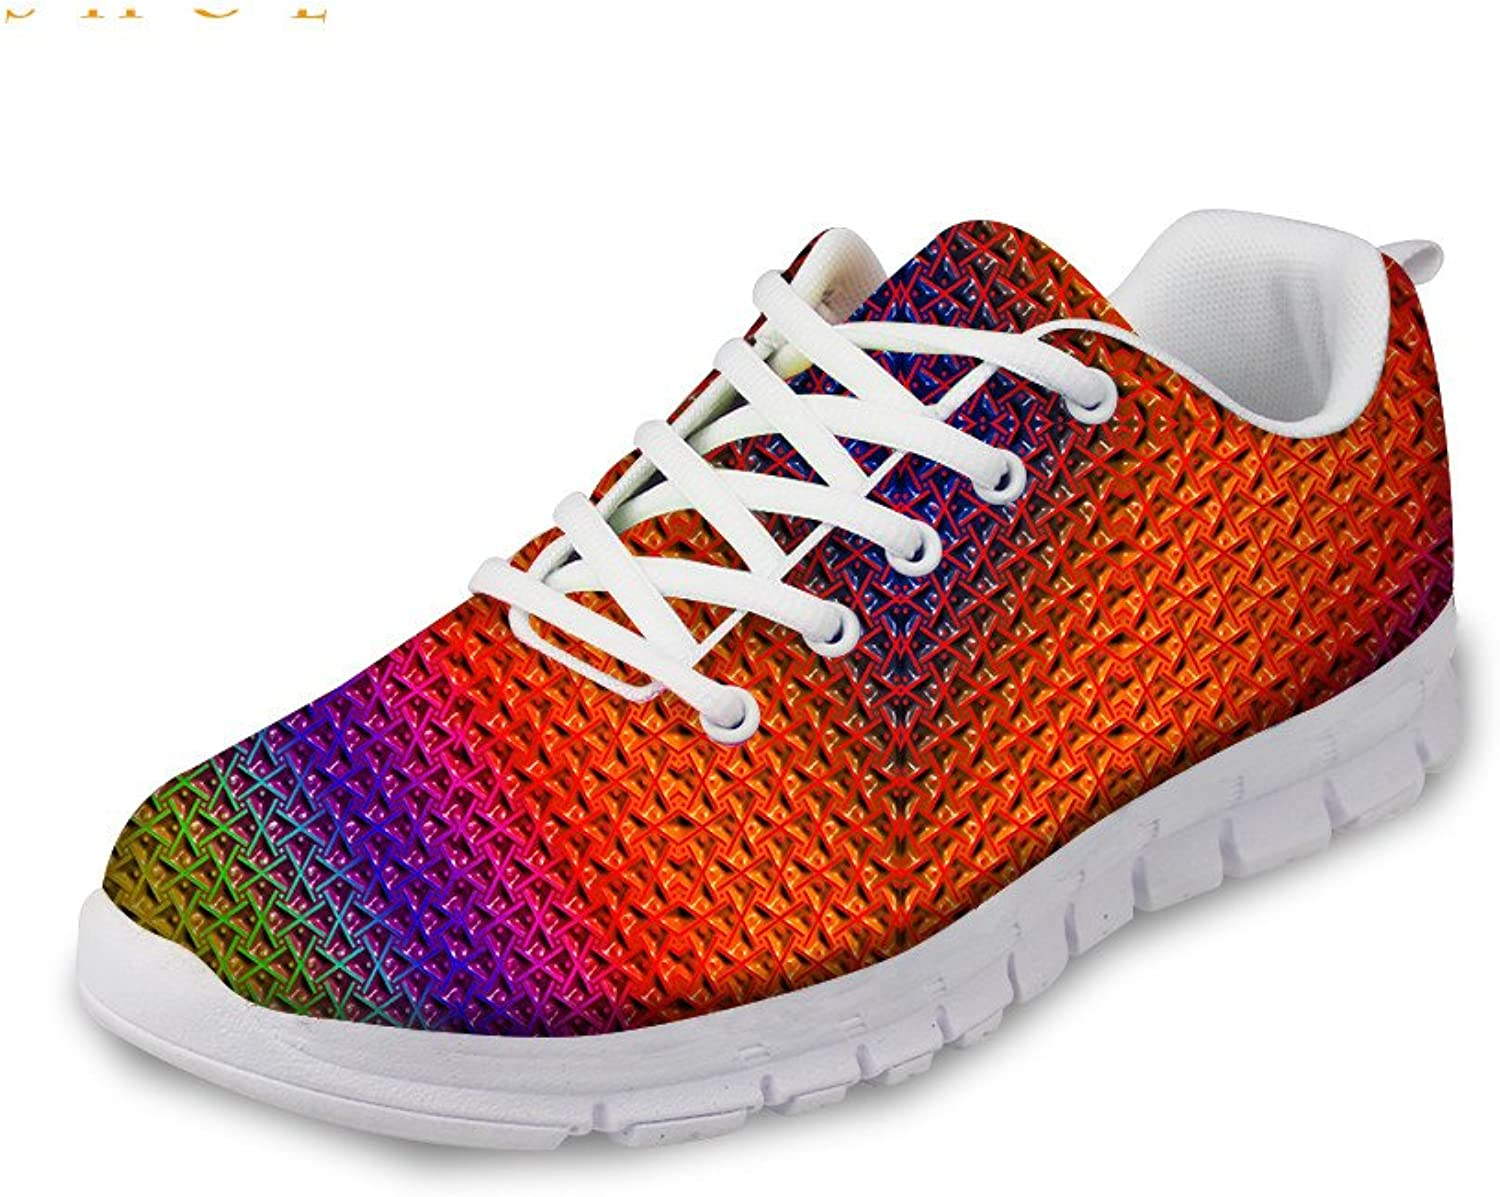 EnlaMorea Men's Women's Fashion Sneakers Lightweight Breathable Mesh Gym Casual Sporty shoes